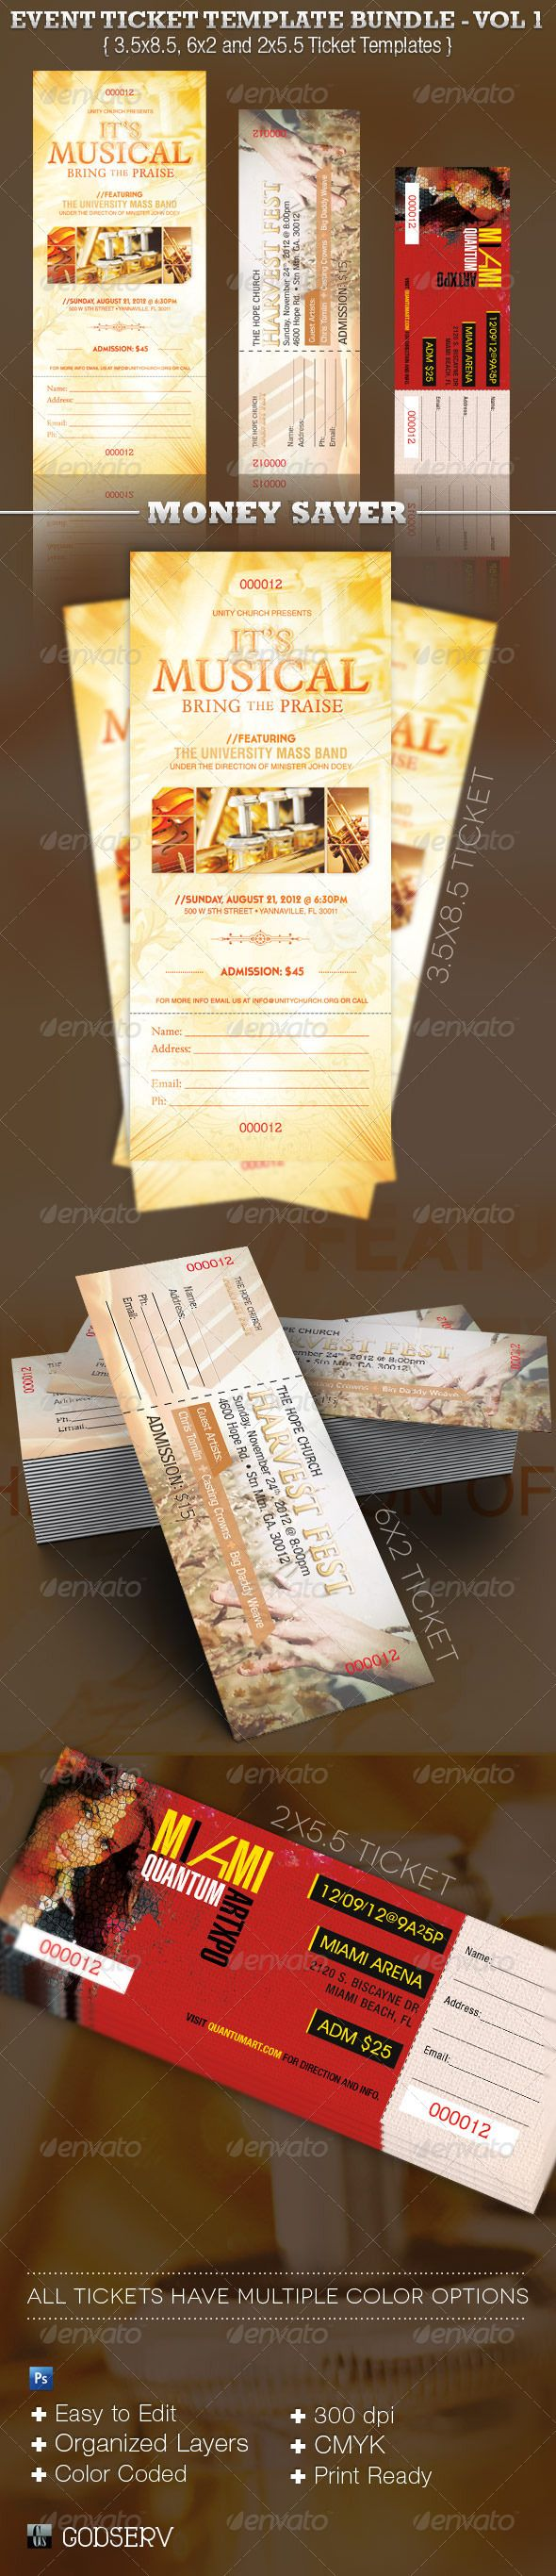 Event #Ticket Template Bundle Vol 1   Miscellaneous Print Templates  Download Here: Https:  Free Event Ticket Maker